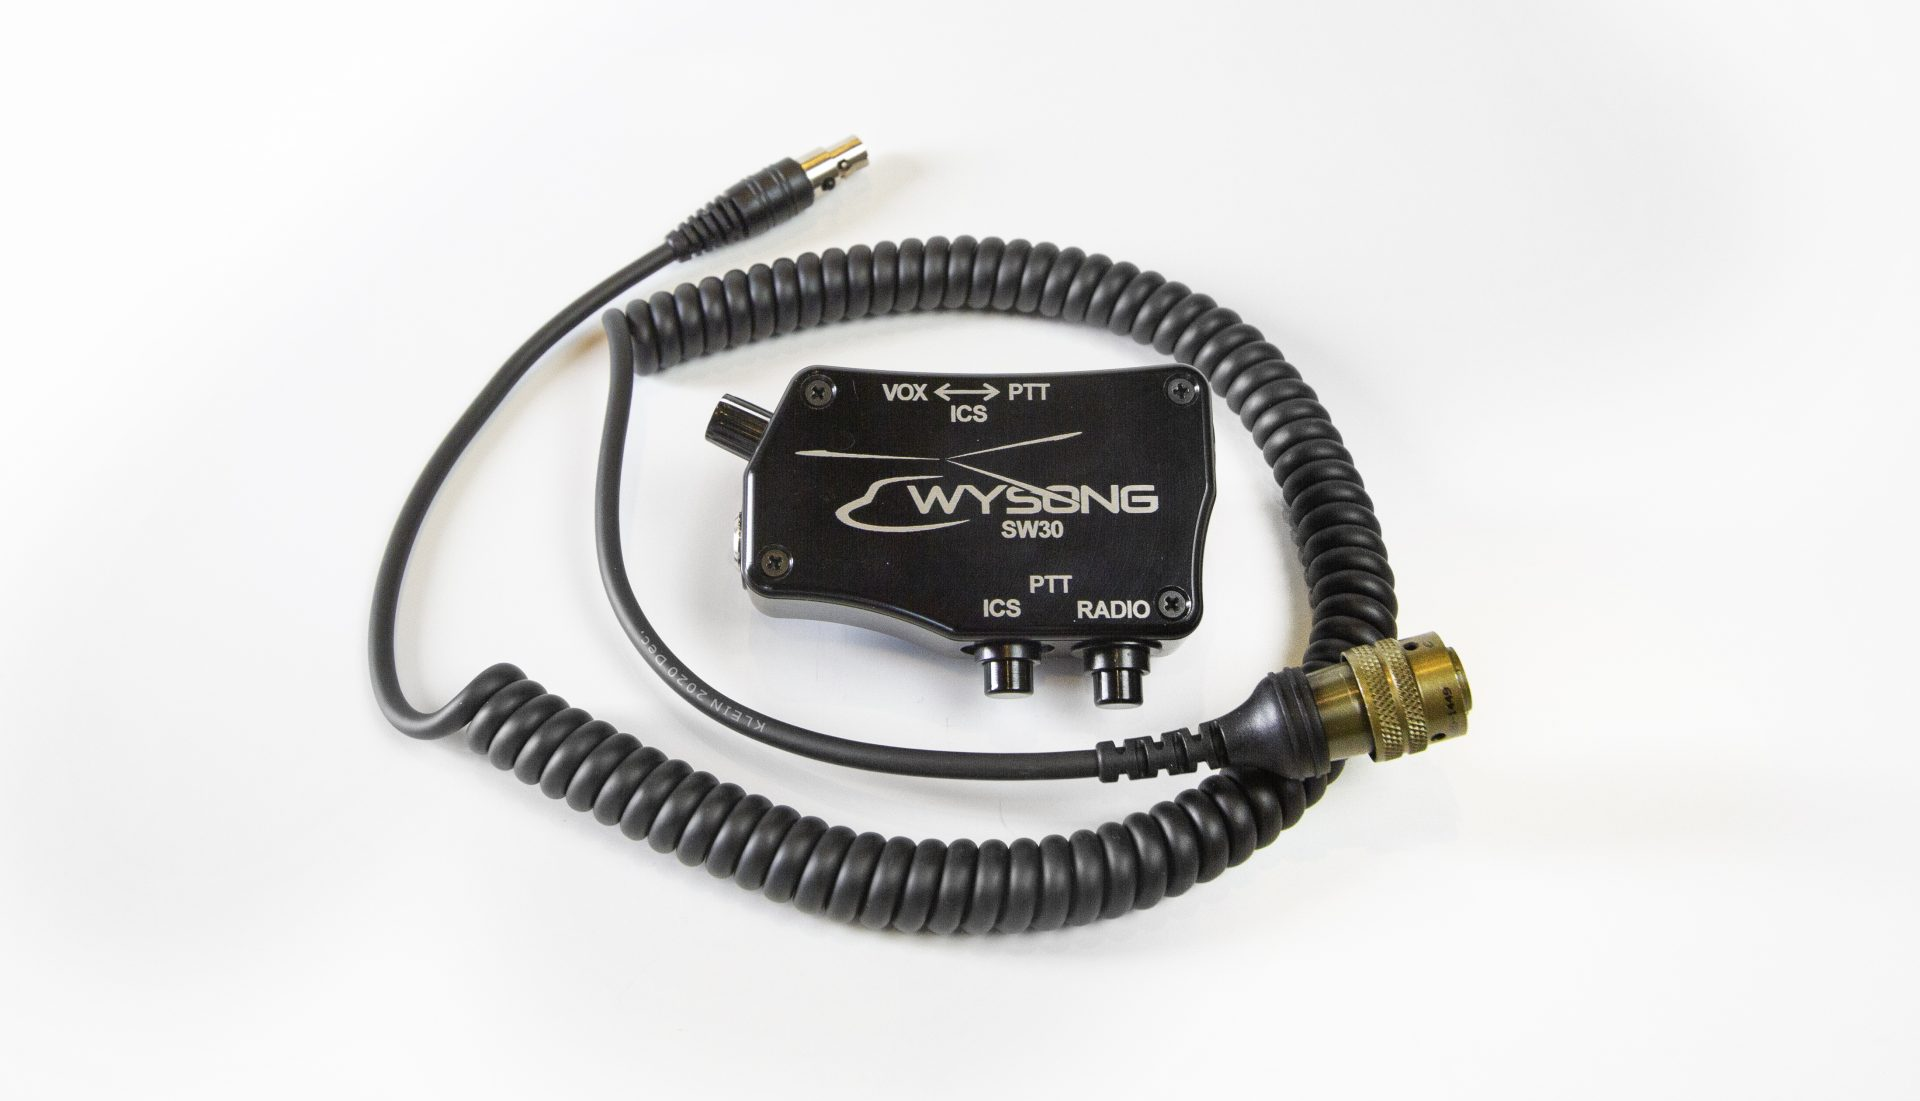 Wysong drop cord side image